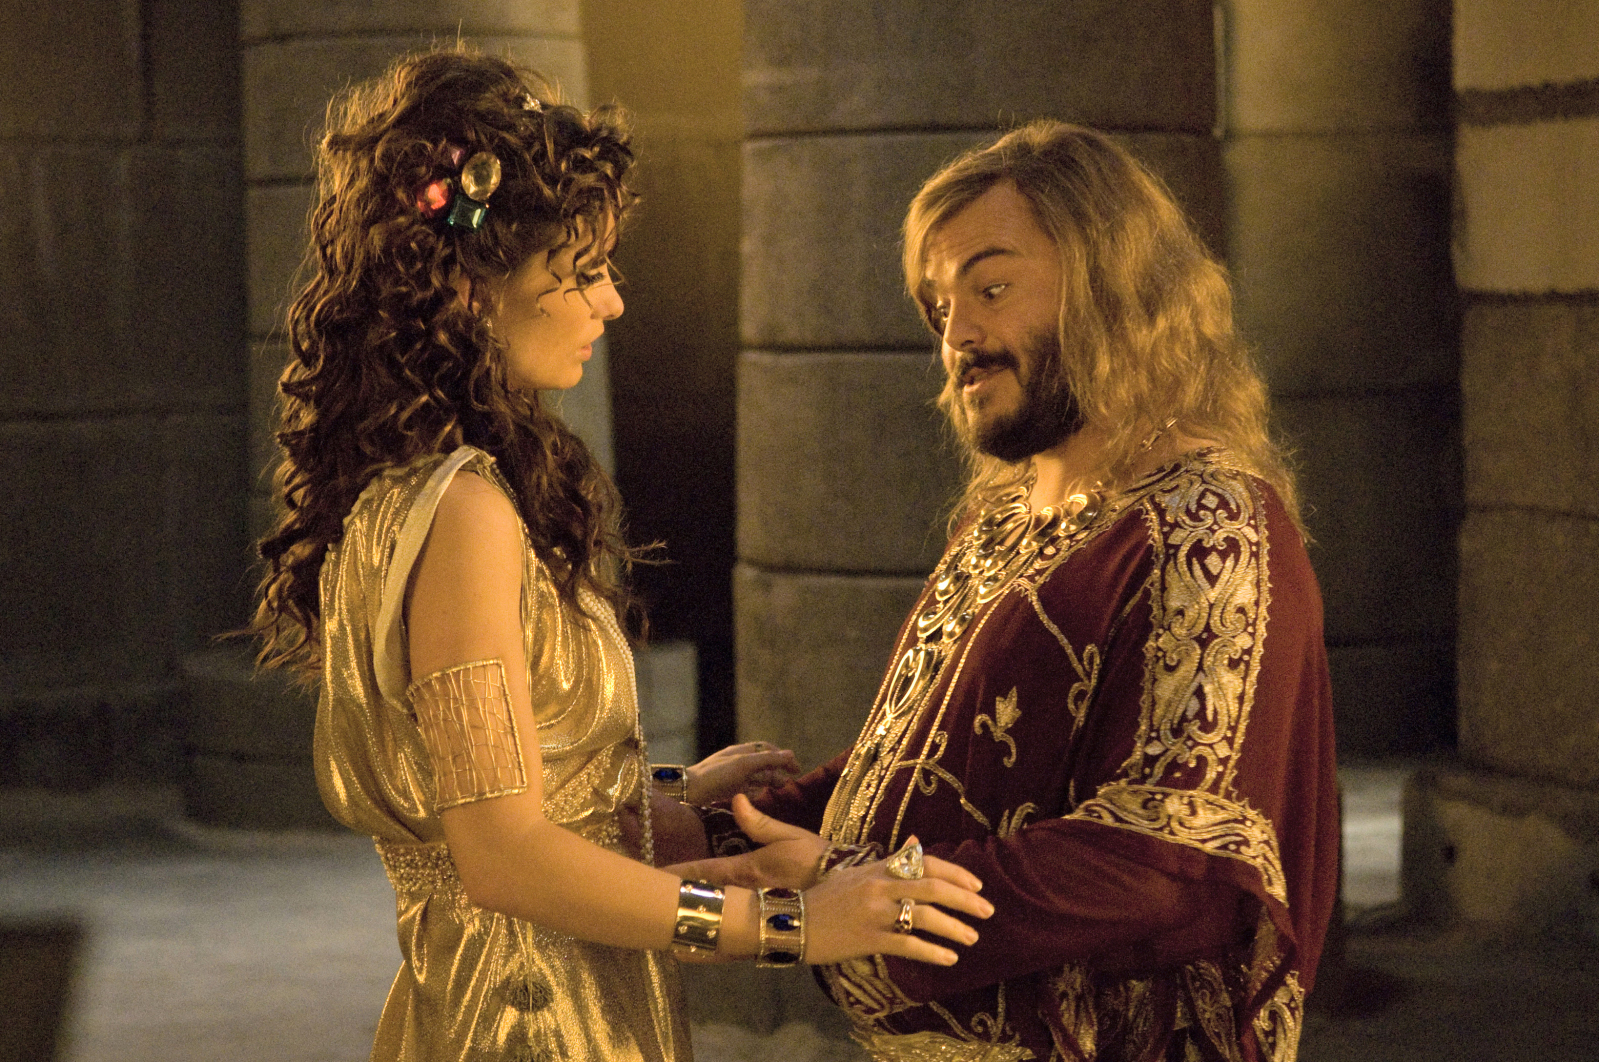 'Year One' Promotional Picture: Olivia Wilde as Princess Inanna